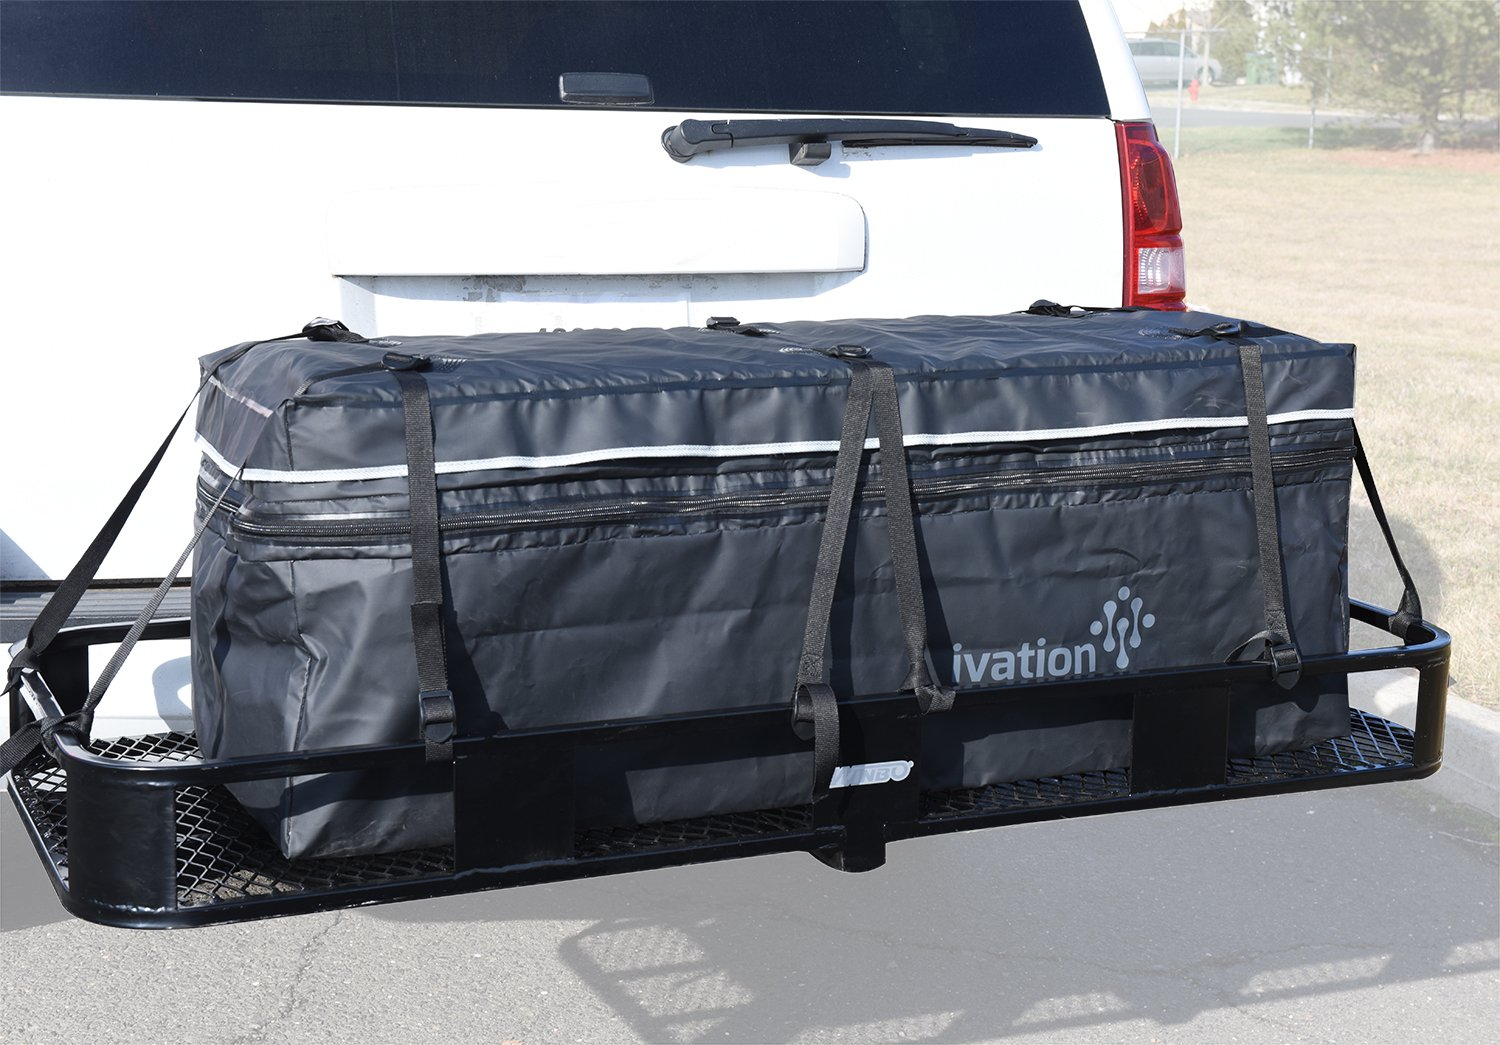 Hitch bag - 100 % Waterproof Expandable Hitch Tray Cargo carrier bag 48'' x 19'' x 22'' (11 Cu Ft) by Ivation